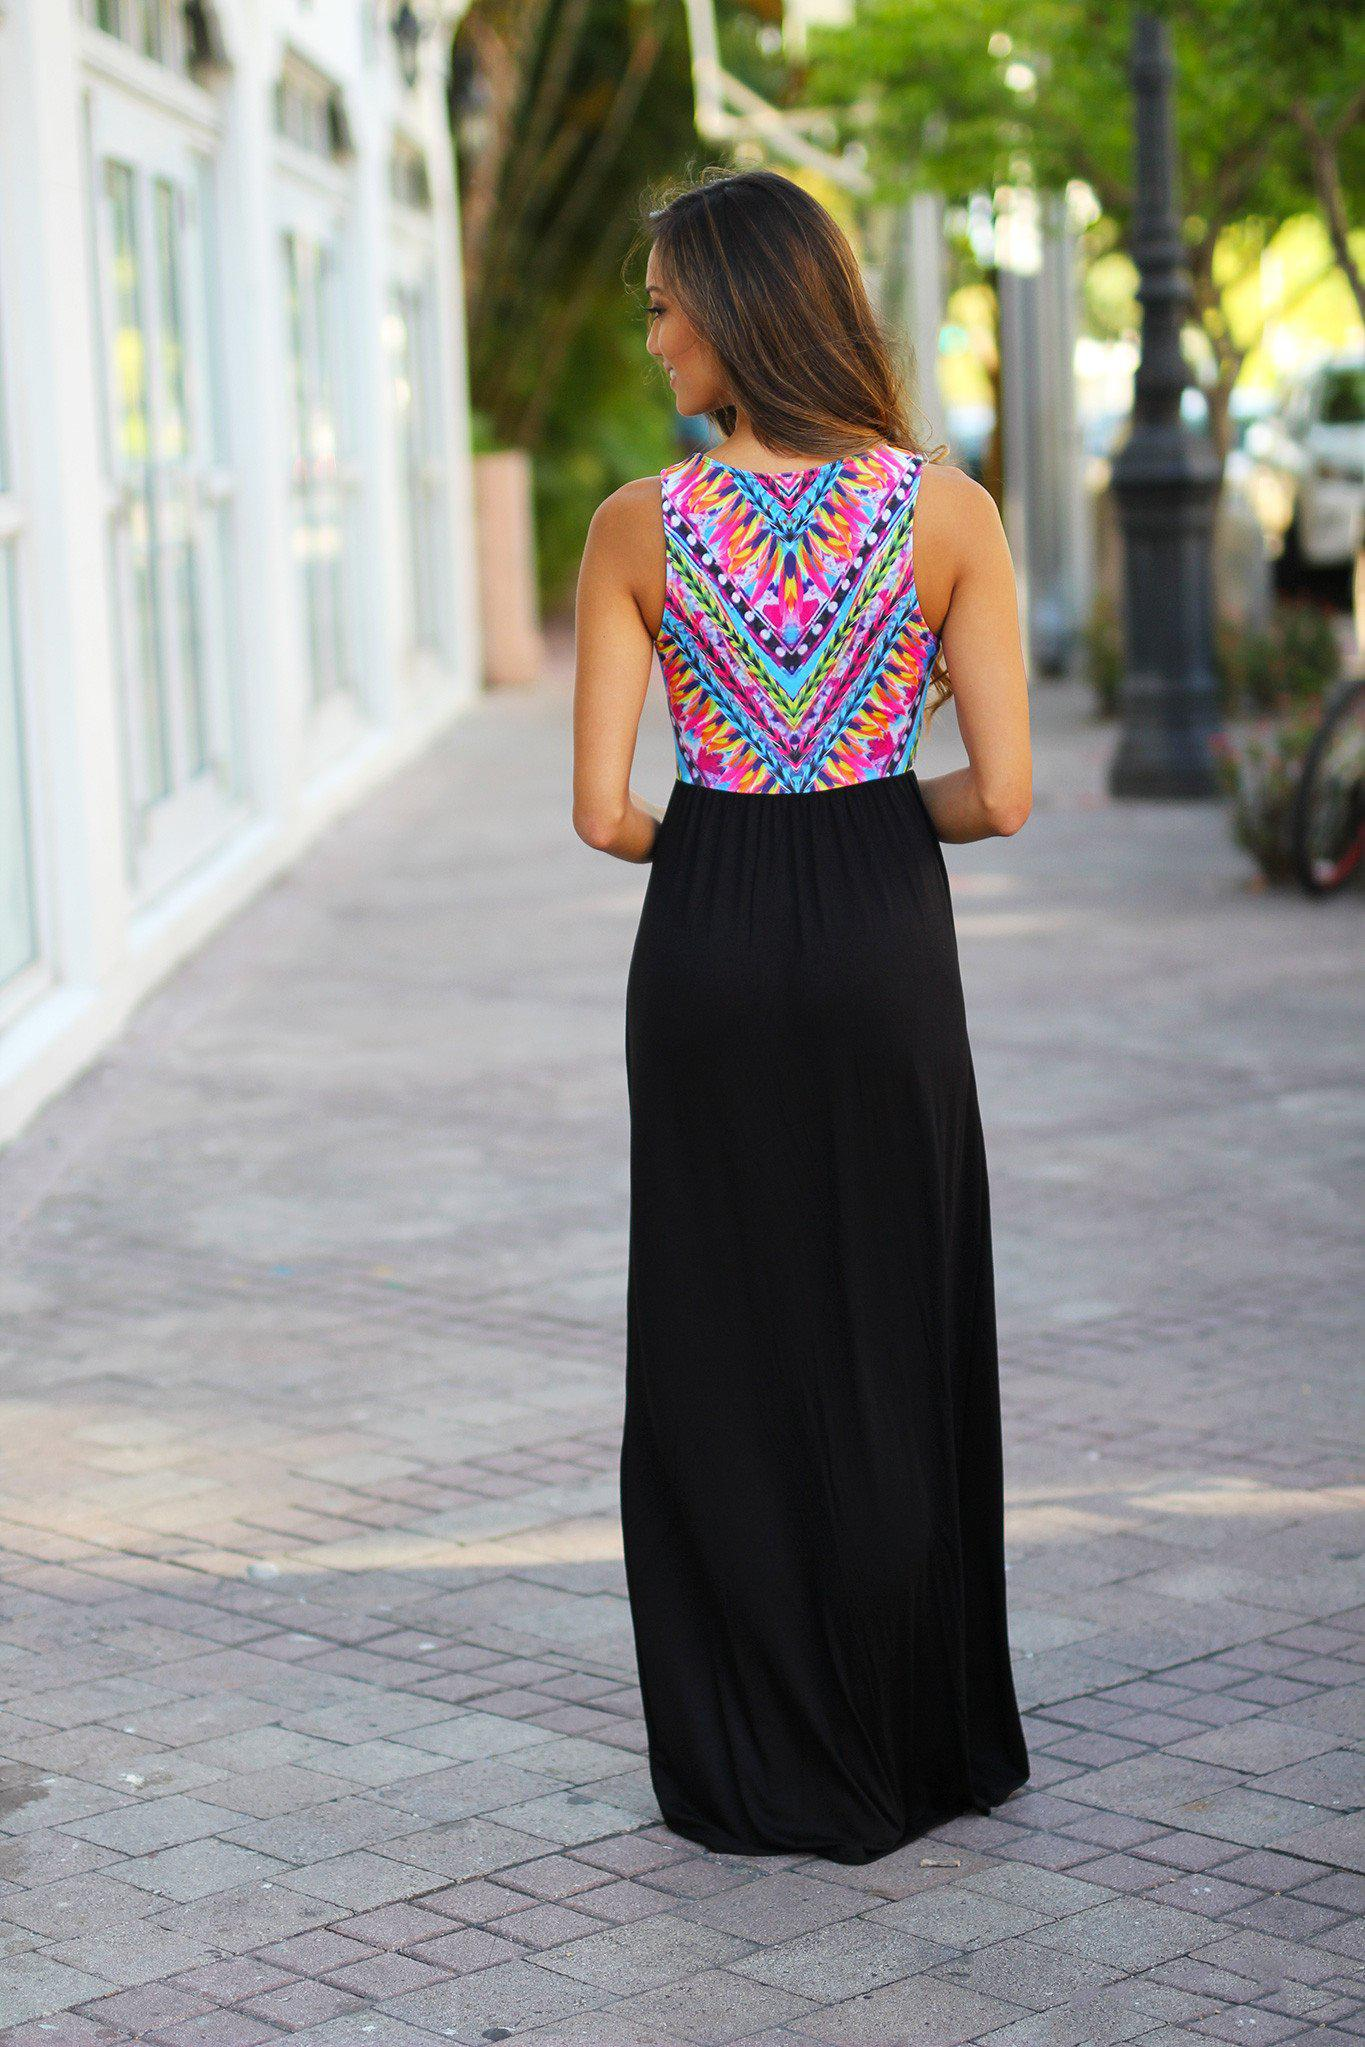 Black Maxi Dress with Printed Top